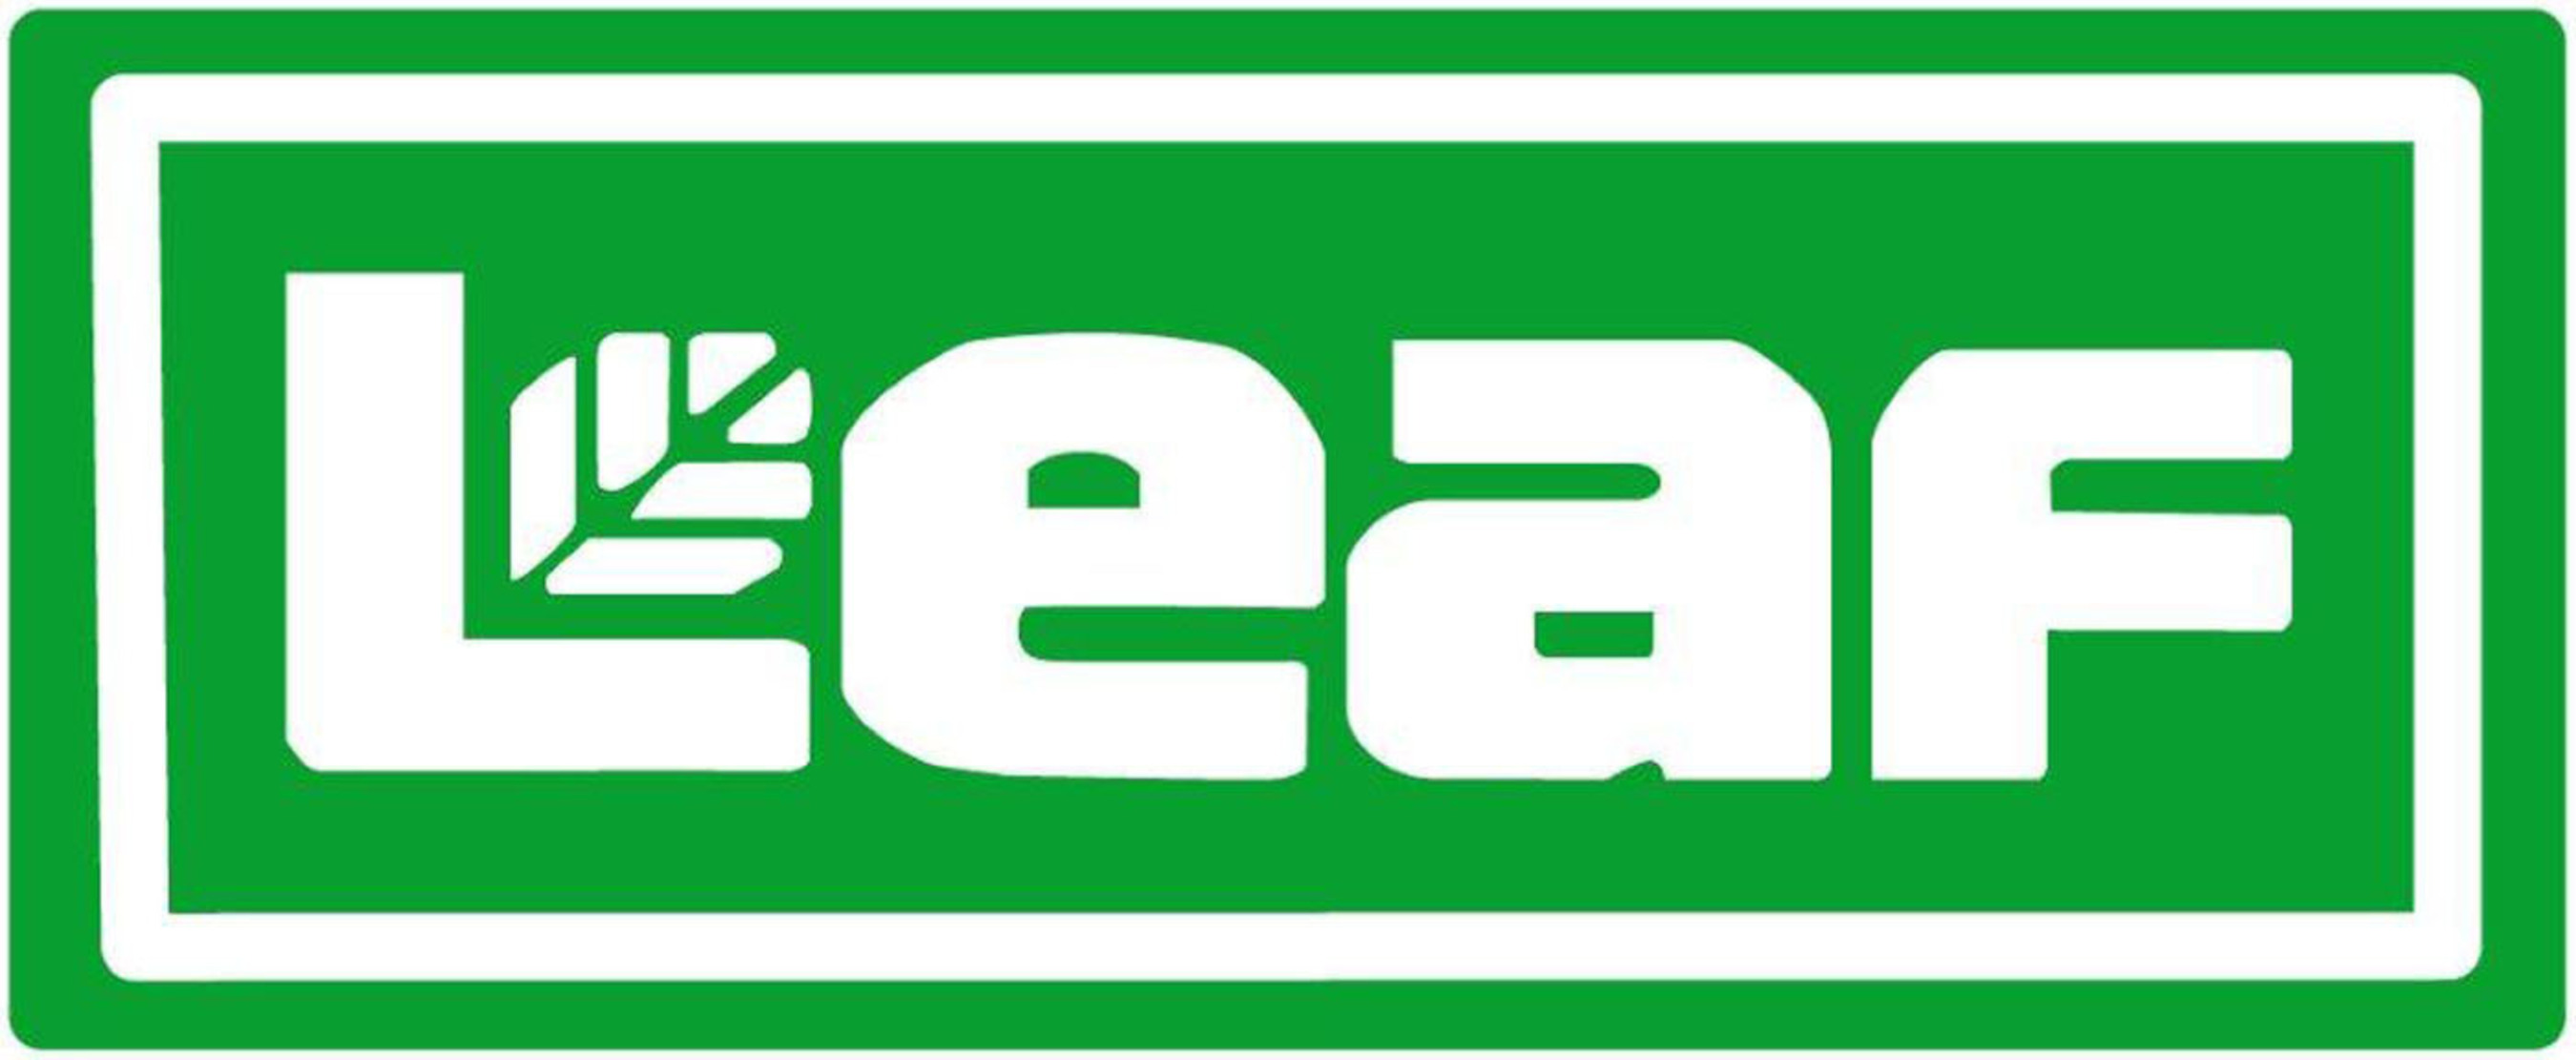 Leaf Brands, LLC, one of the most innovative candy companies in the US. (PRNewsFoto/Leaf Brands, LLC) (PRNewsFoto/LEAF BRANDS, LLC)